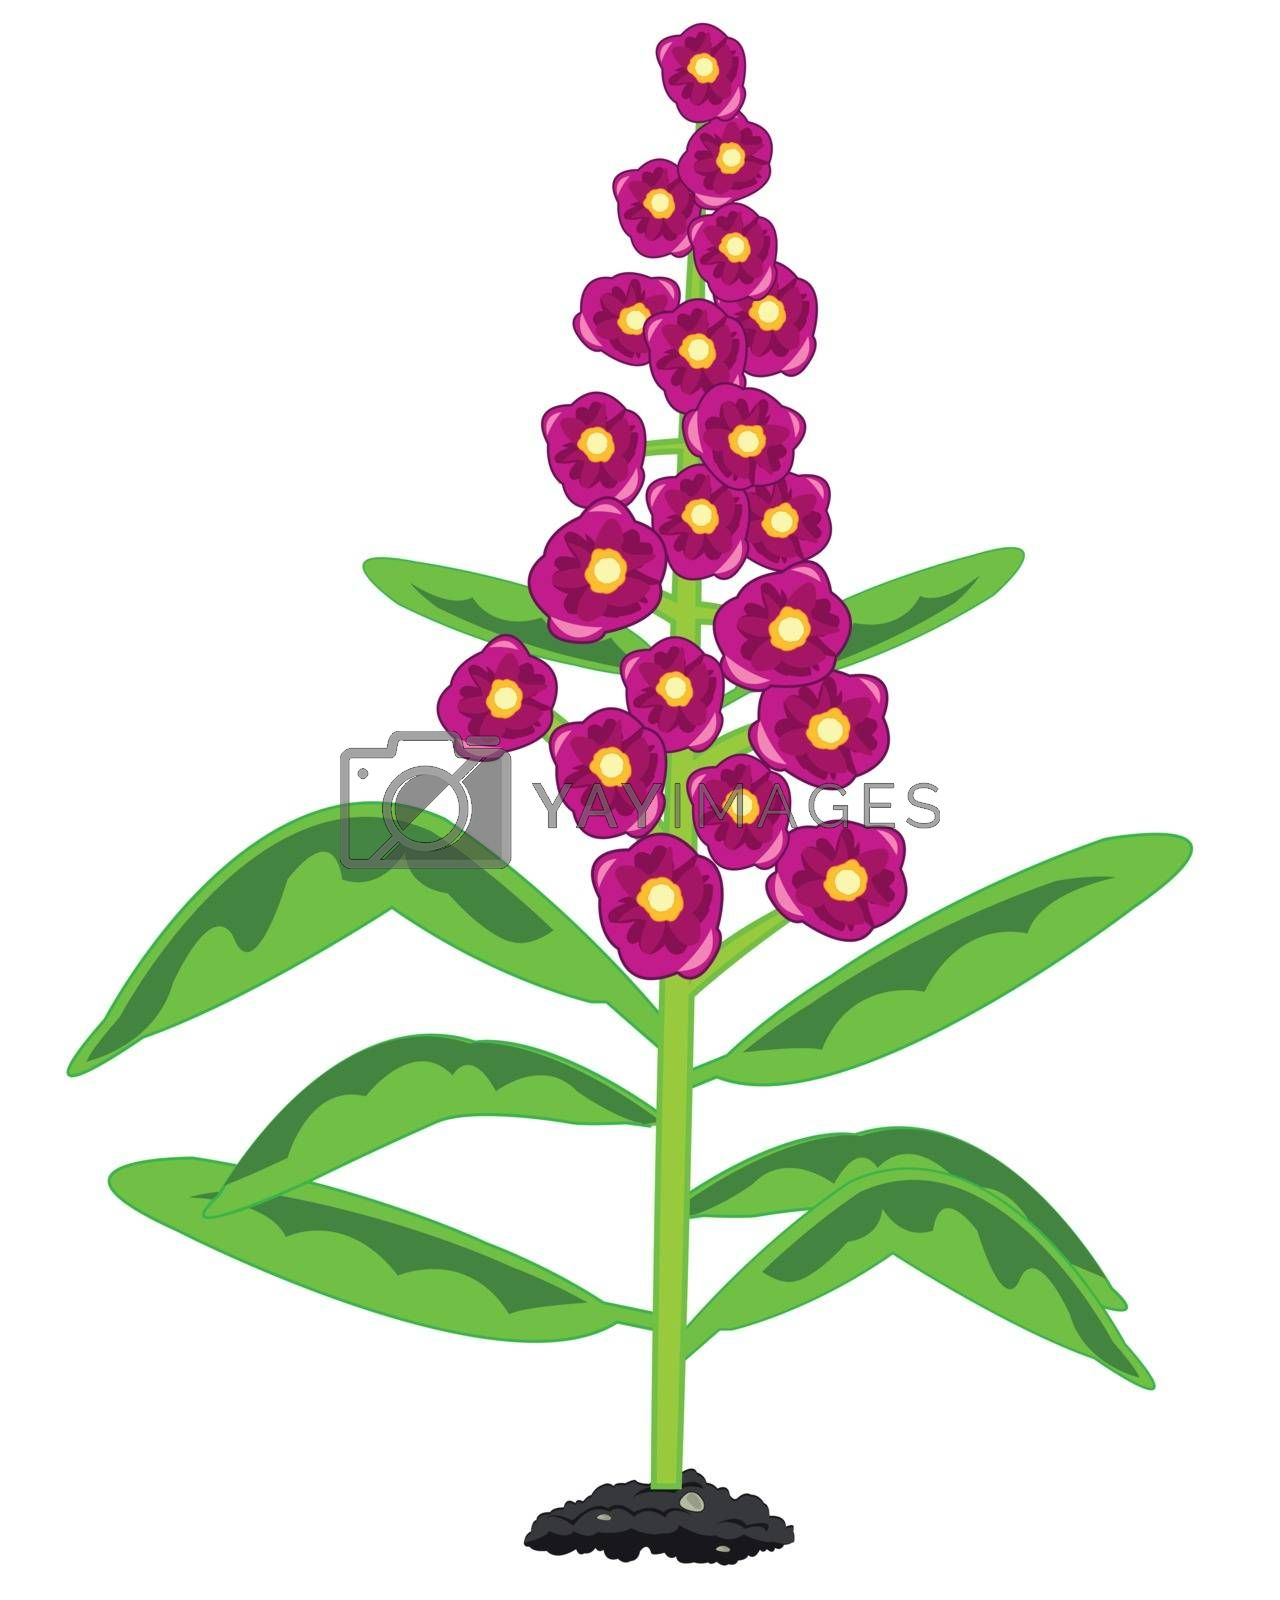 Royalty free image of Decorative plant with beautiful flower of the rose colour by cobol1964